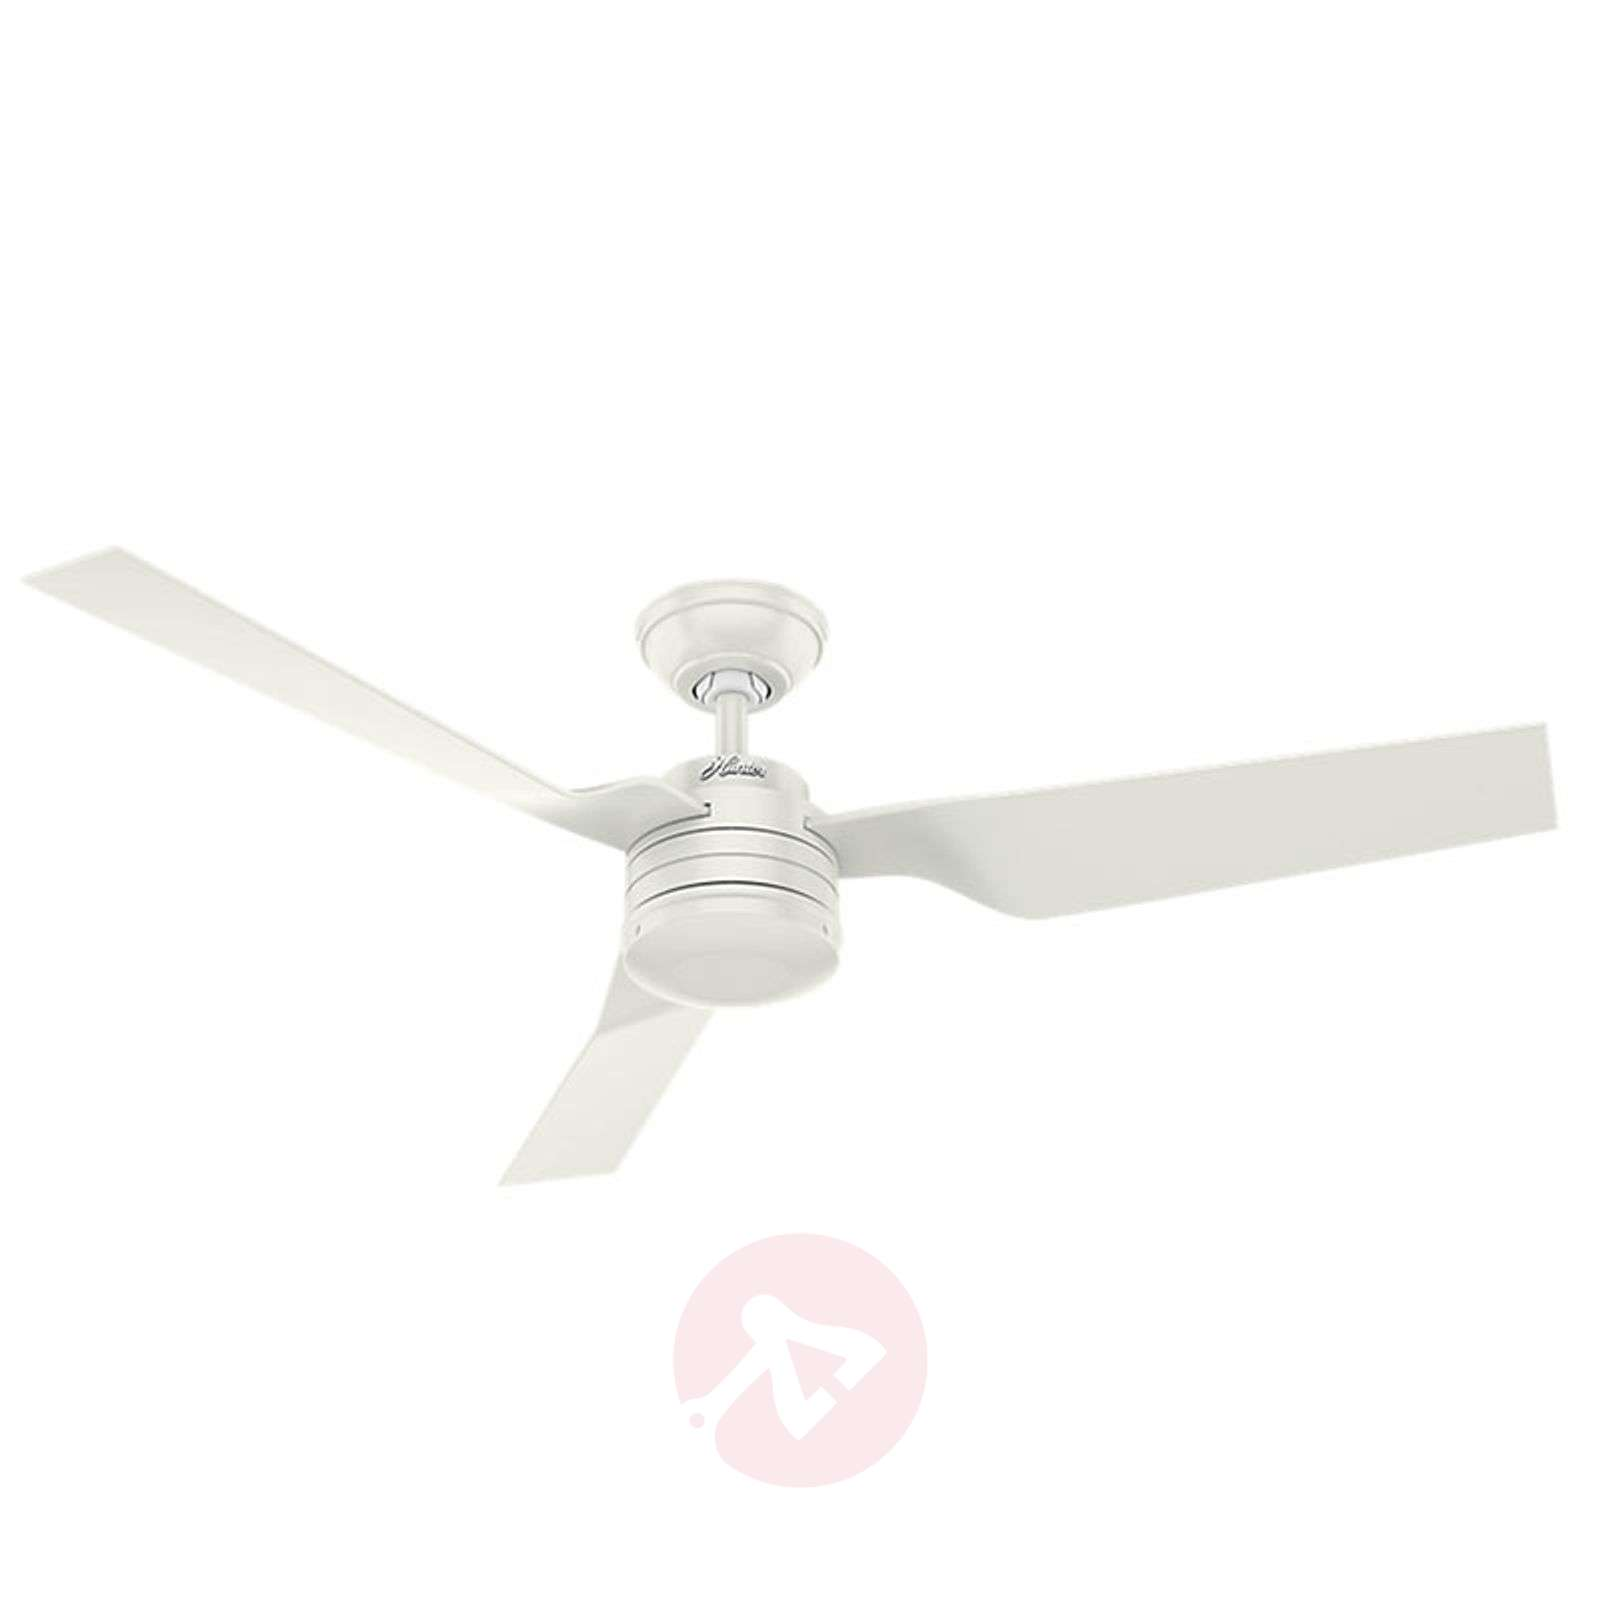 Hunter Cabo Frio ventilateur de plafond simple-4545018-01